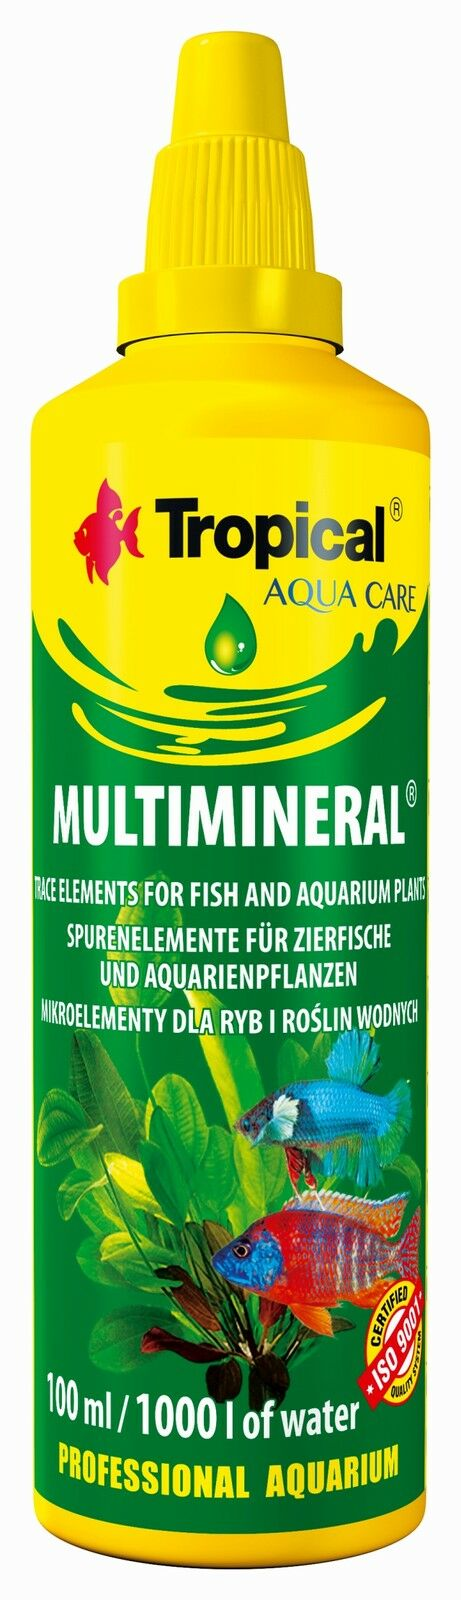 Mineral Supplement Micro Elements For Tropical Aquarium Fish Tank Aquatic Plants